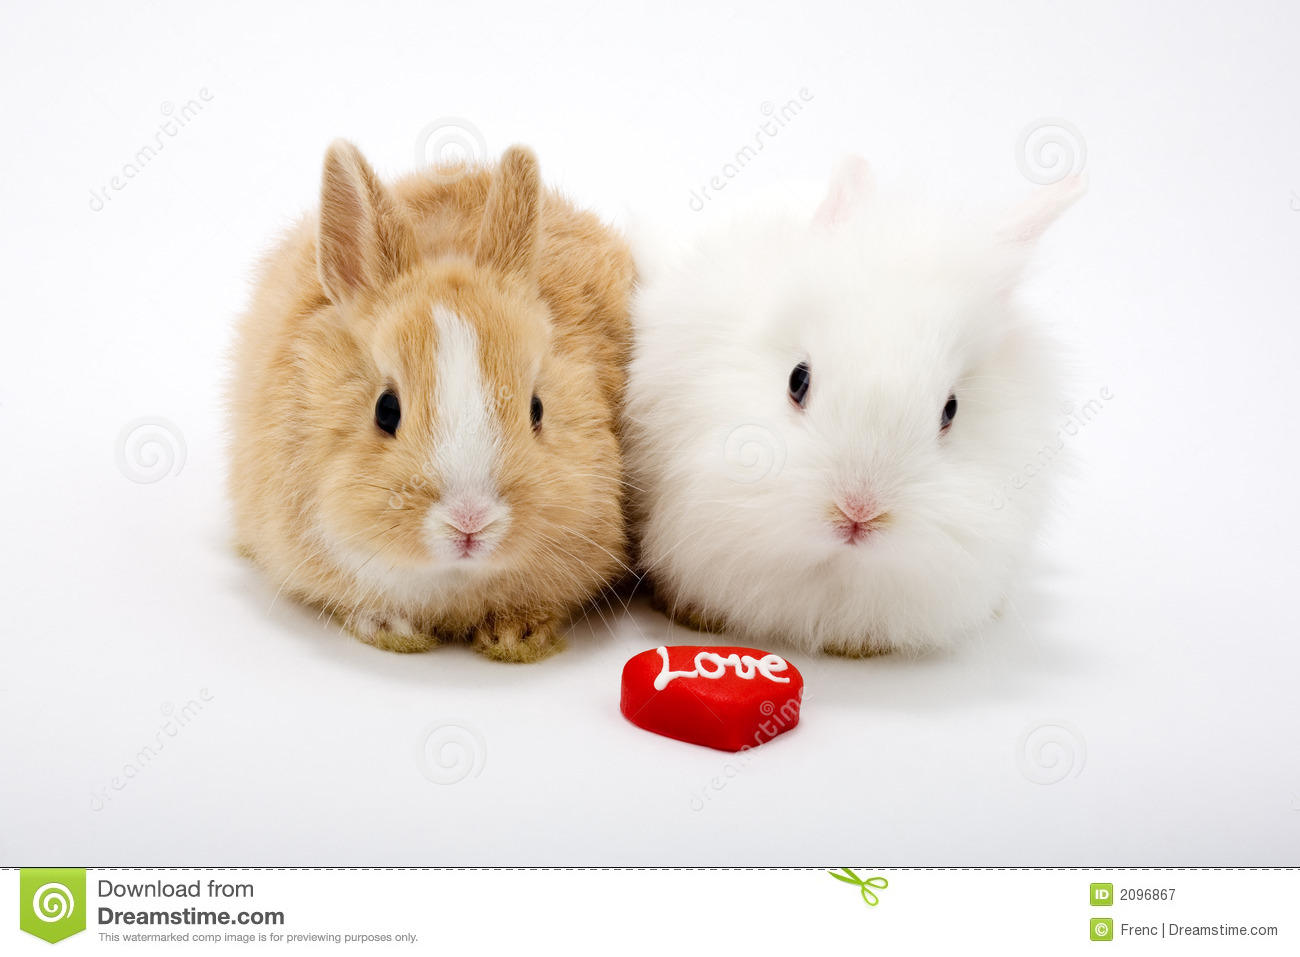 Two Cute Baby Rabbits Royalty Free Stock Photography - Image: 2096867